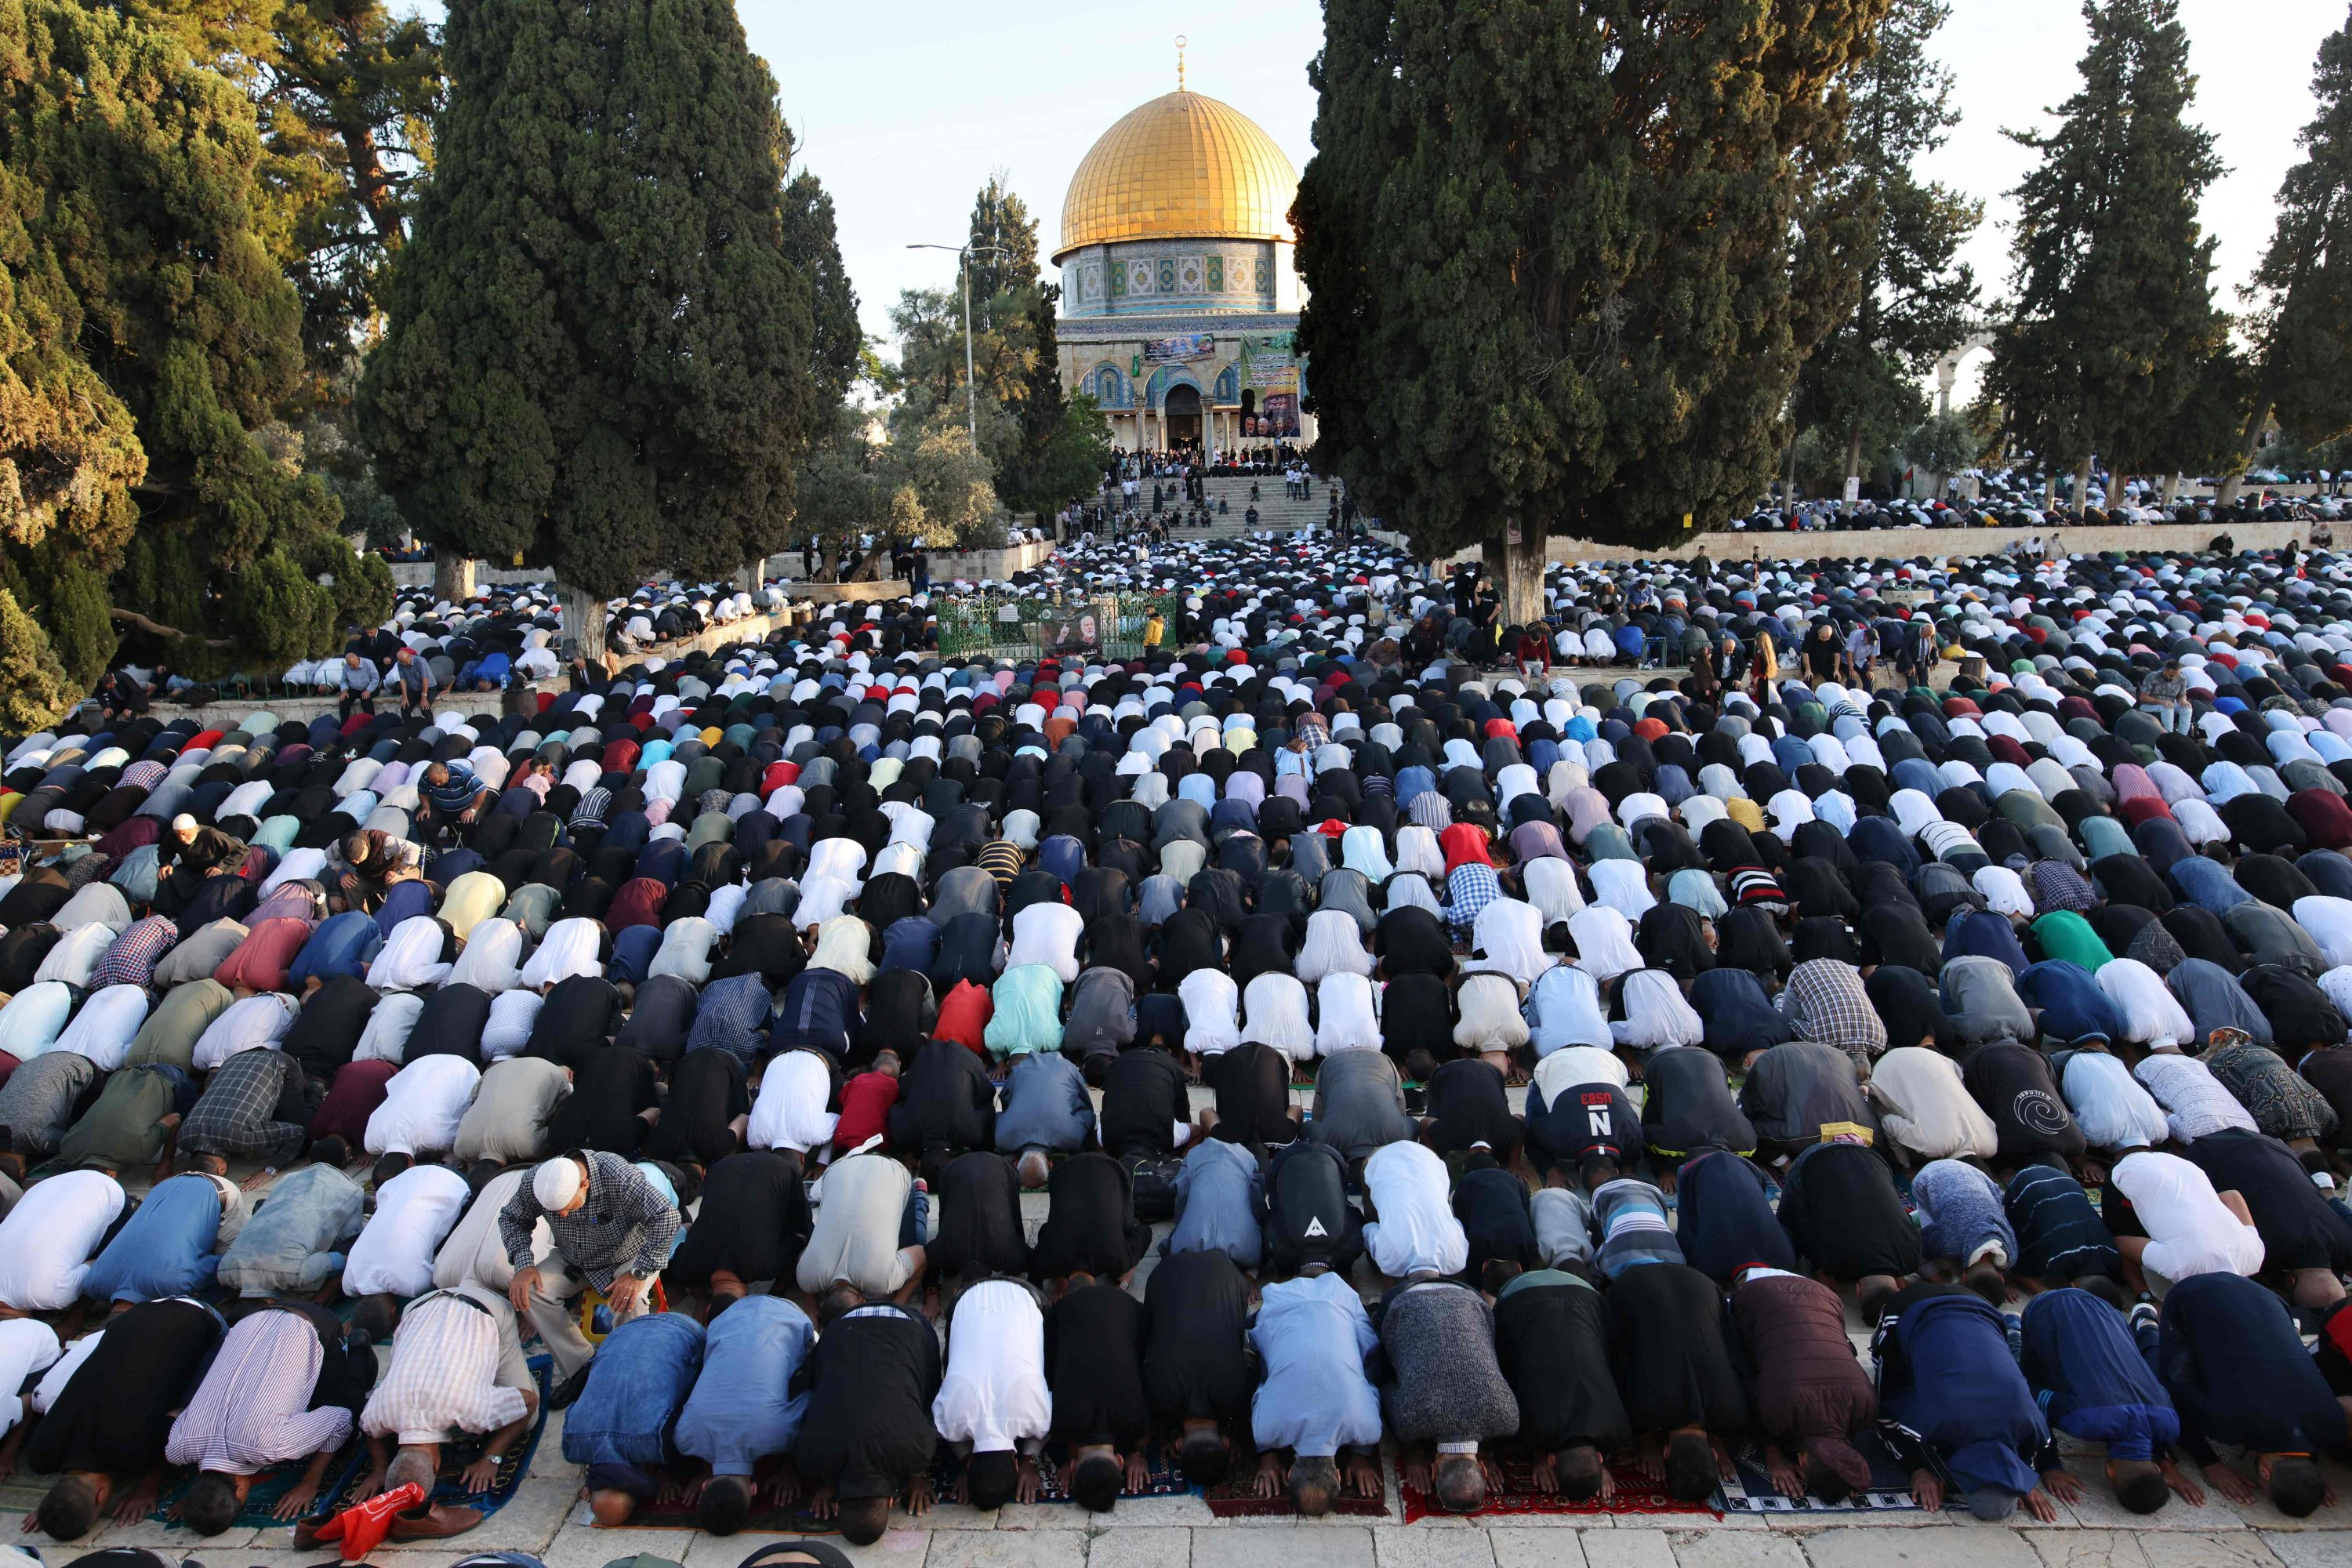 Muslims perform the morning Eid al-Fitr prayer, marking the end of the holy fasting month of Ramadan, outside the Dome of the Rock in the Al-Aqsa Mosque complex, East Jerusalem, occupied Palestine, May 13, 2021. (AFP Photo)